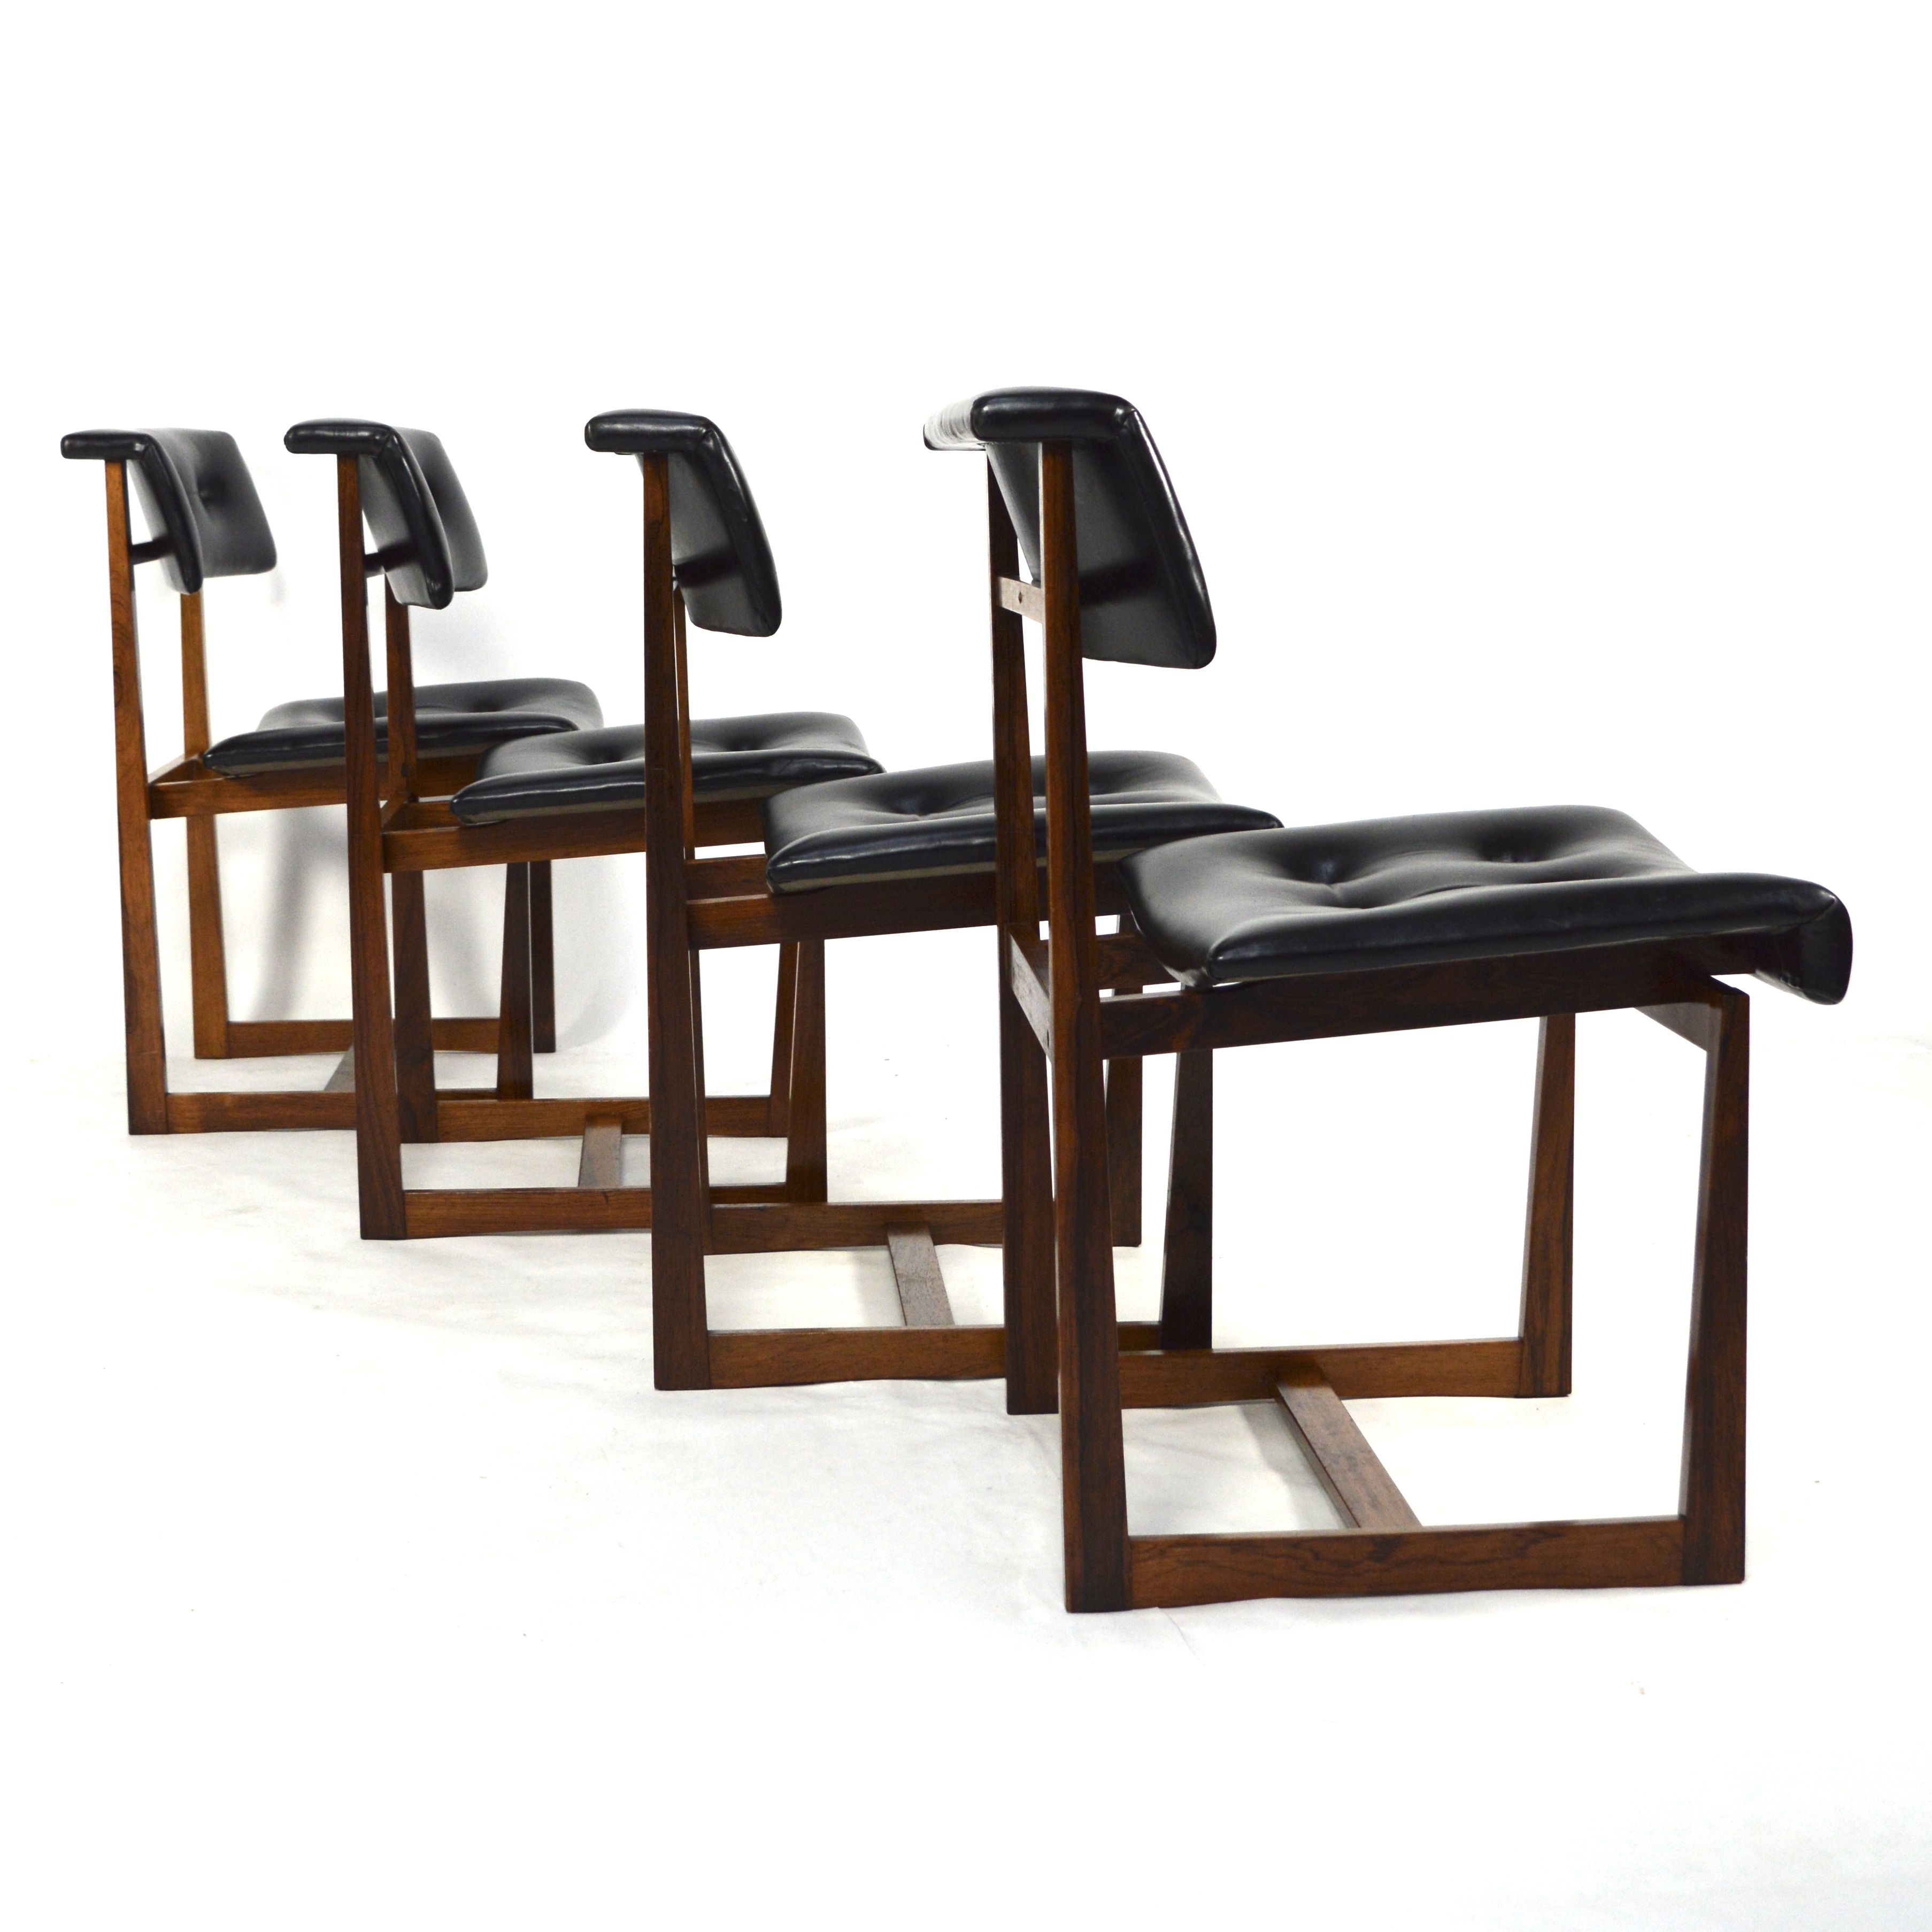 Amazing Set Of 4 Scandinavian Dining Chairs. They Are Made Of Solid  Brazilian Rosewood (Rio Palissander) And Black Leather.